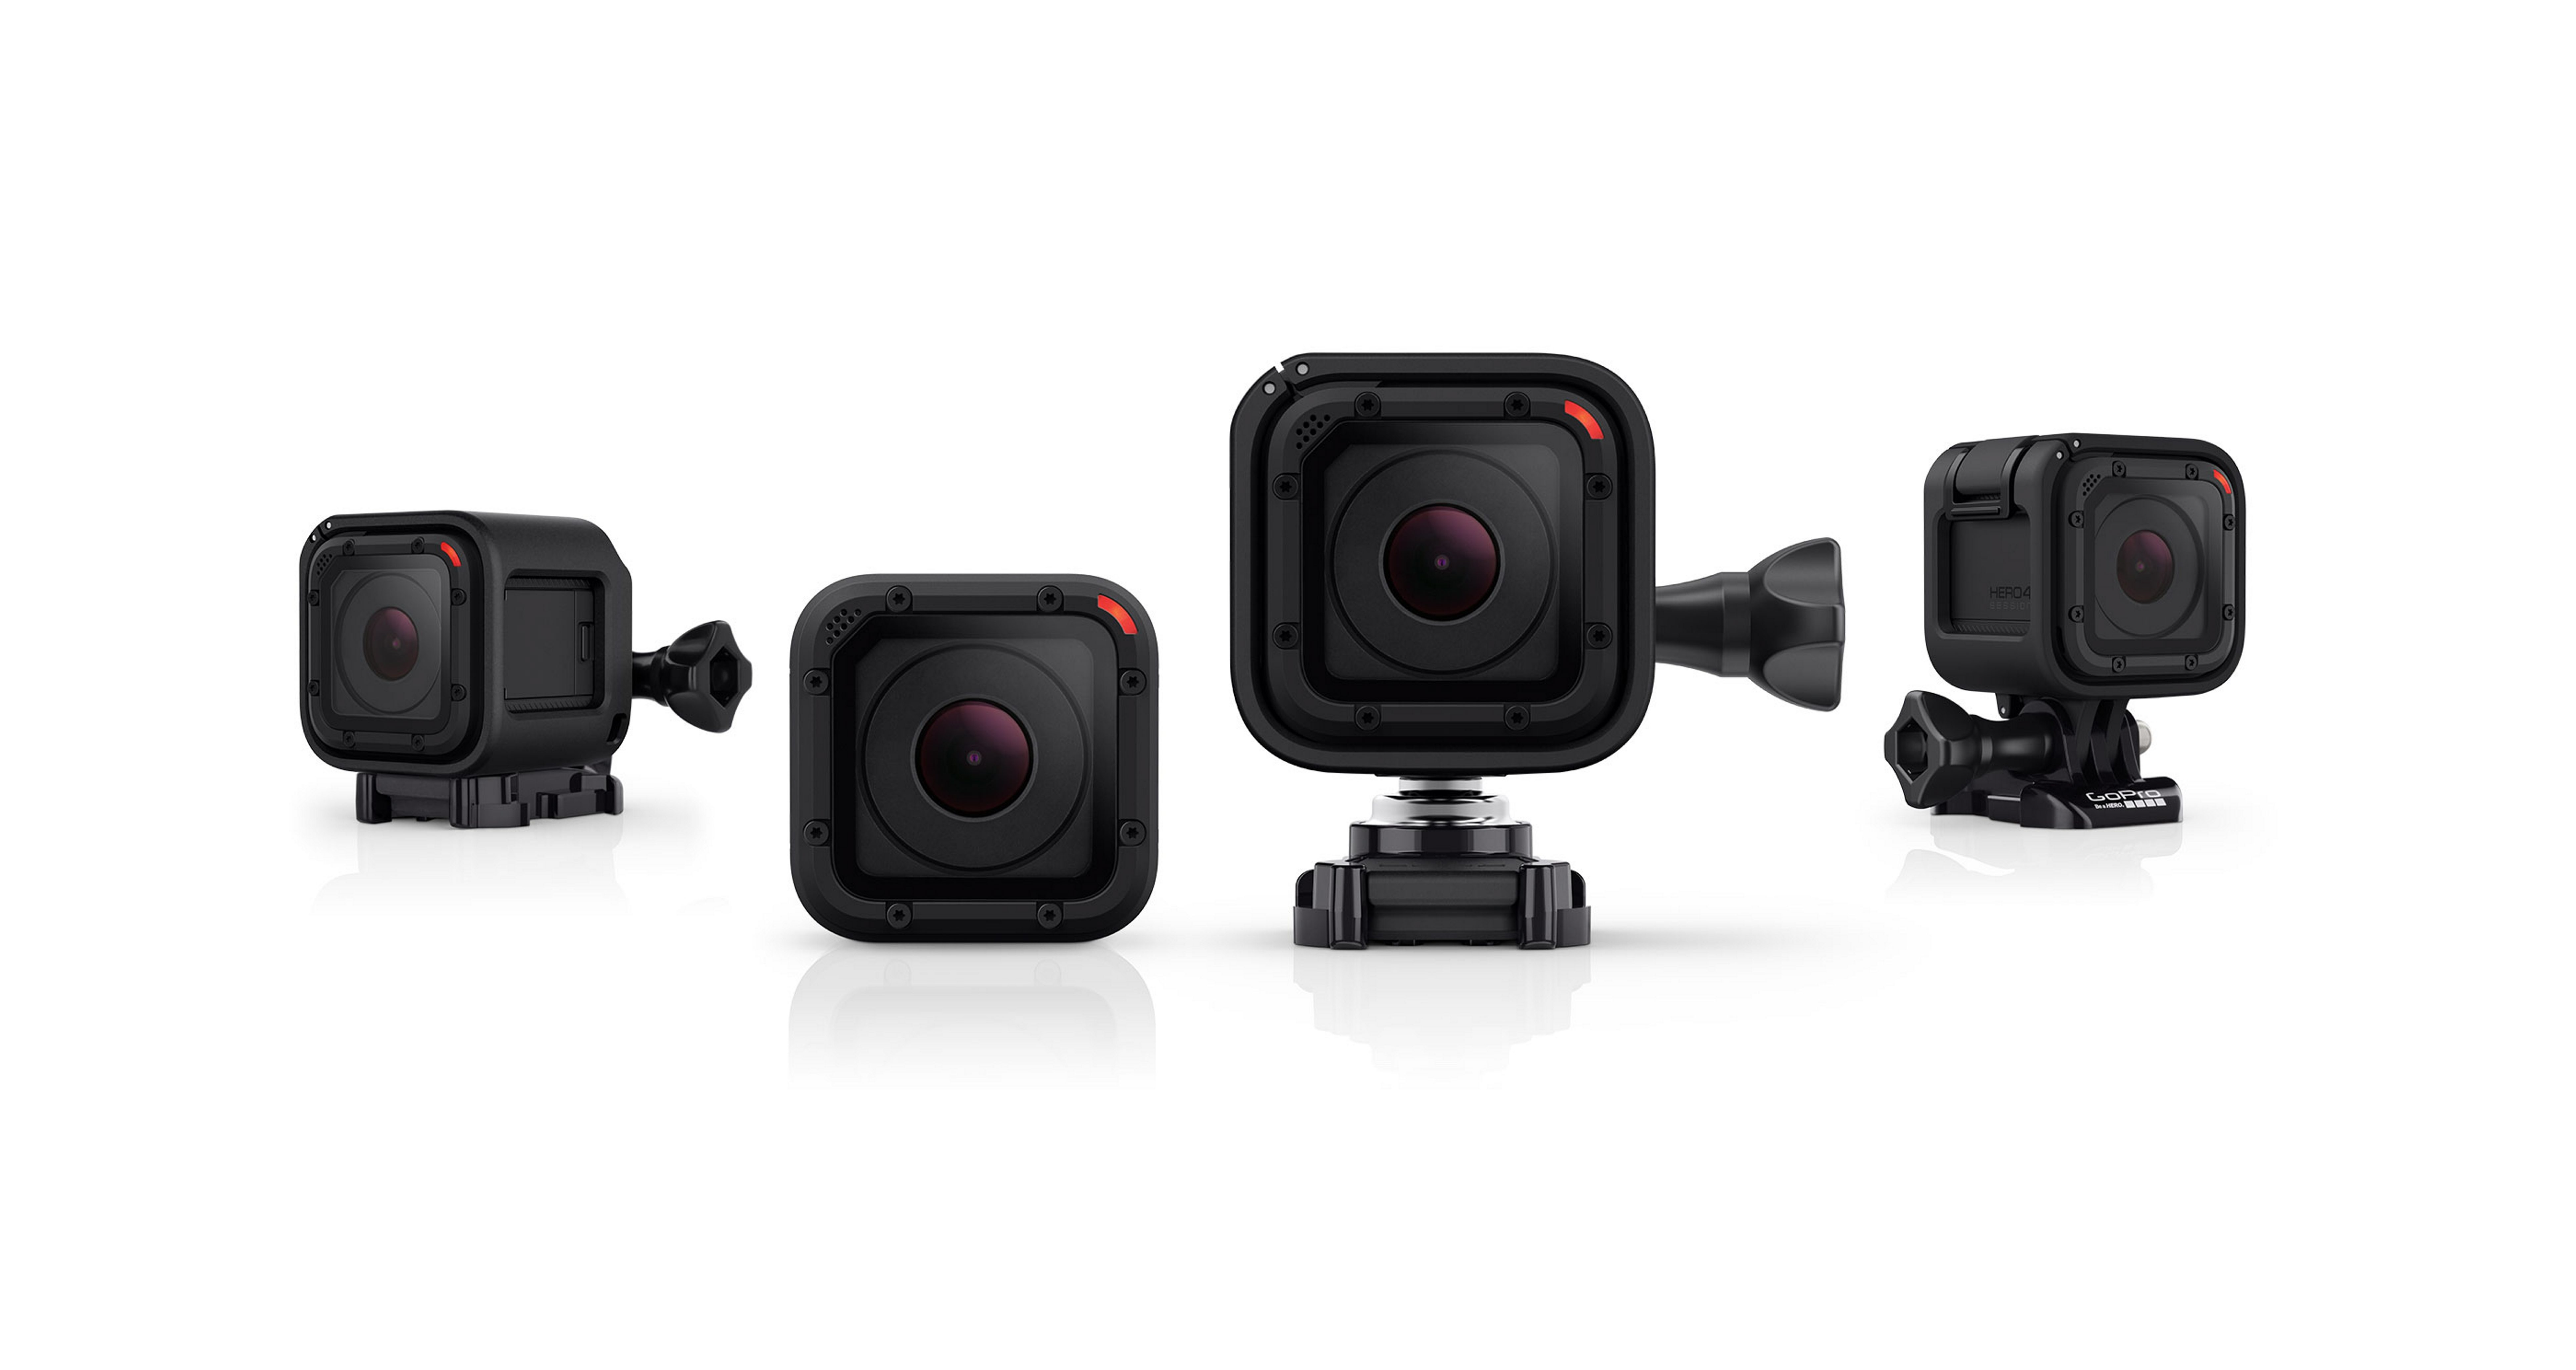 The Hero4 Session is lighter and smaller than GoPro's Hero4 Black and Silver models.